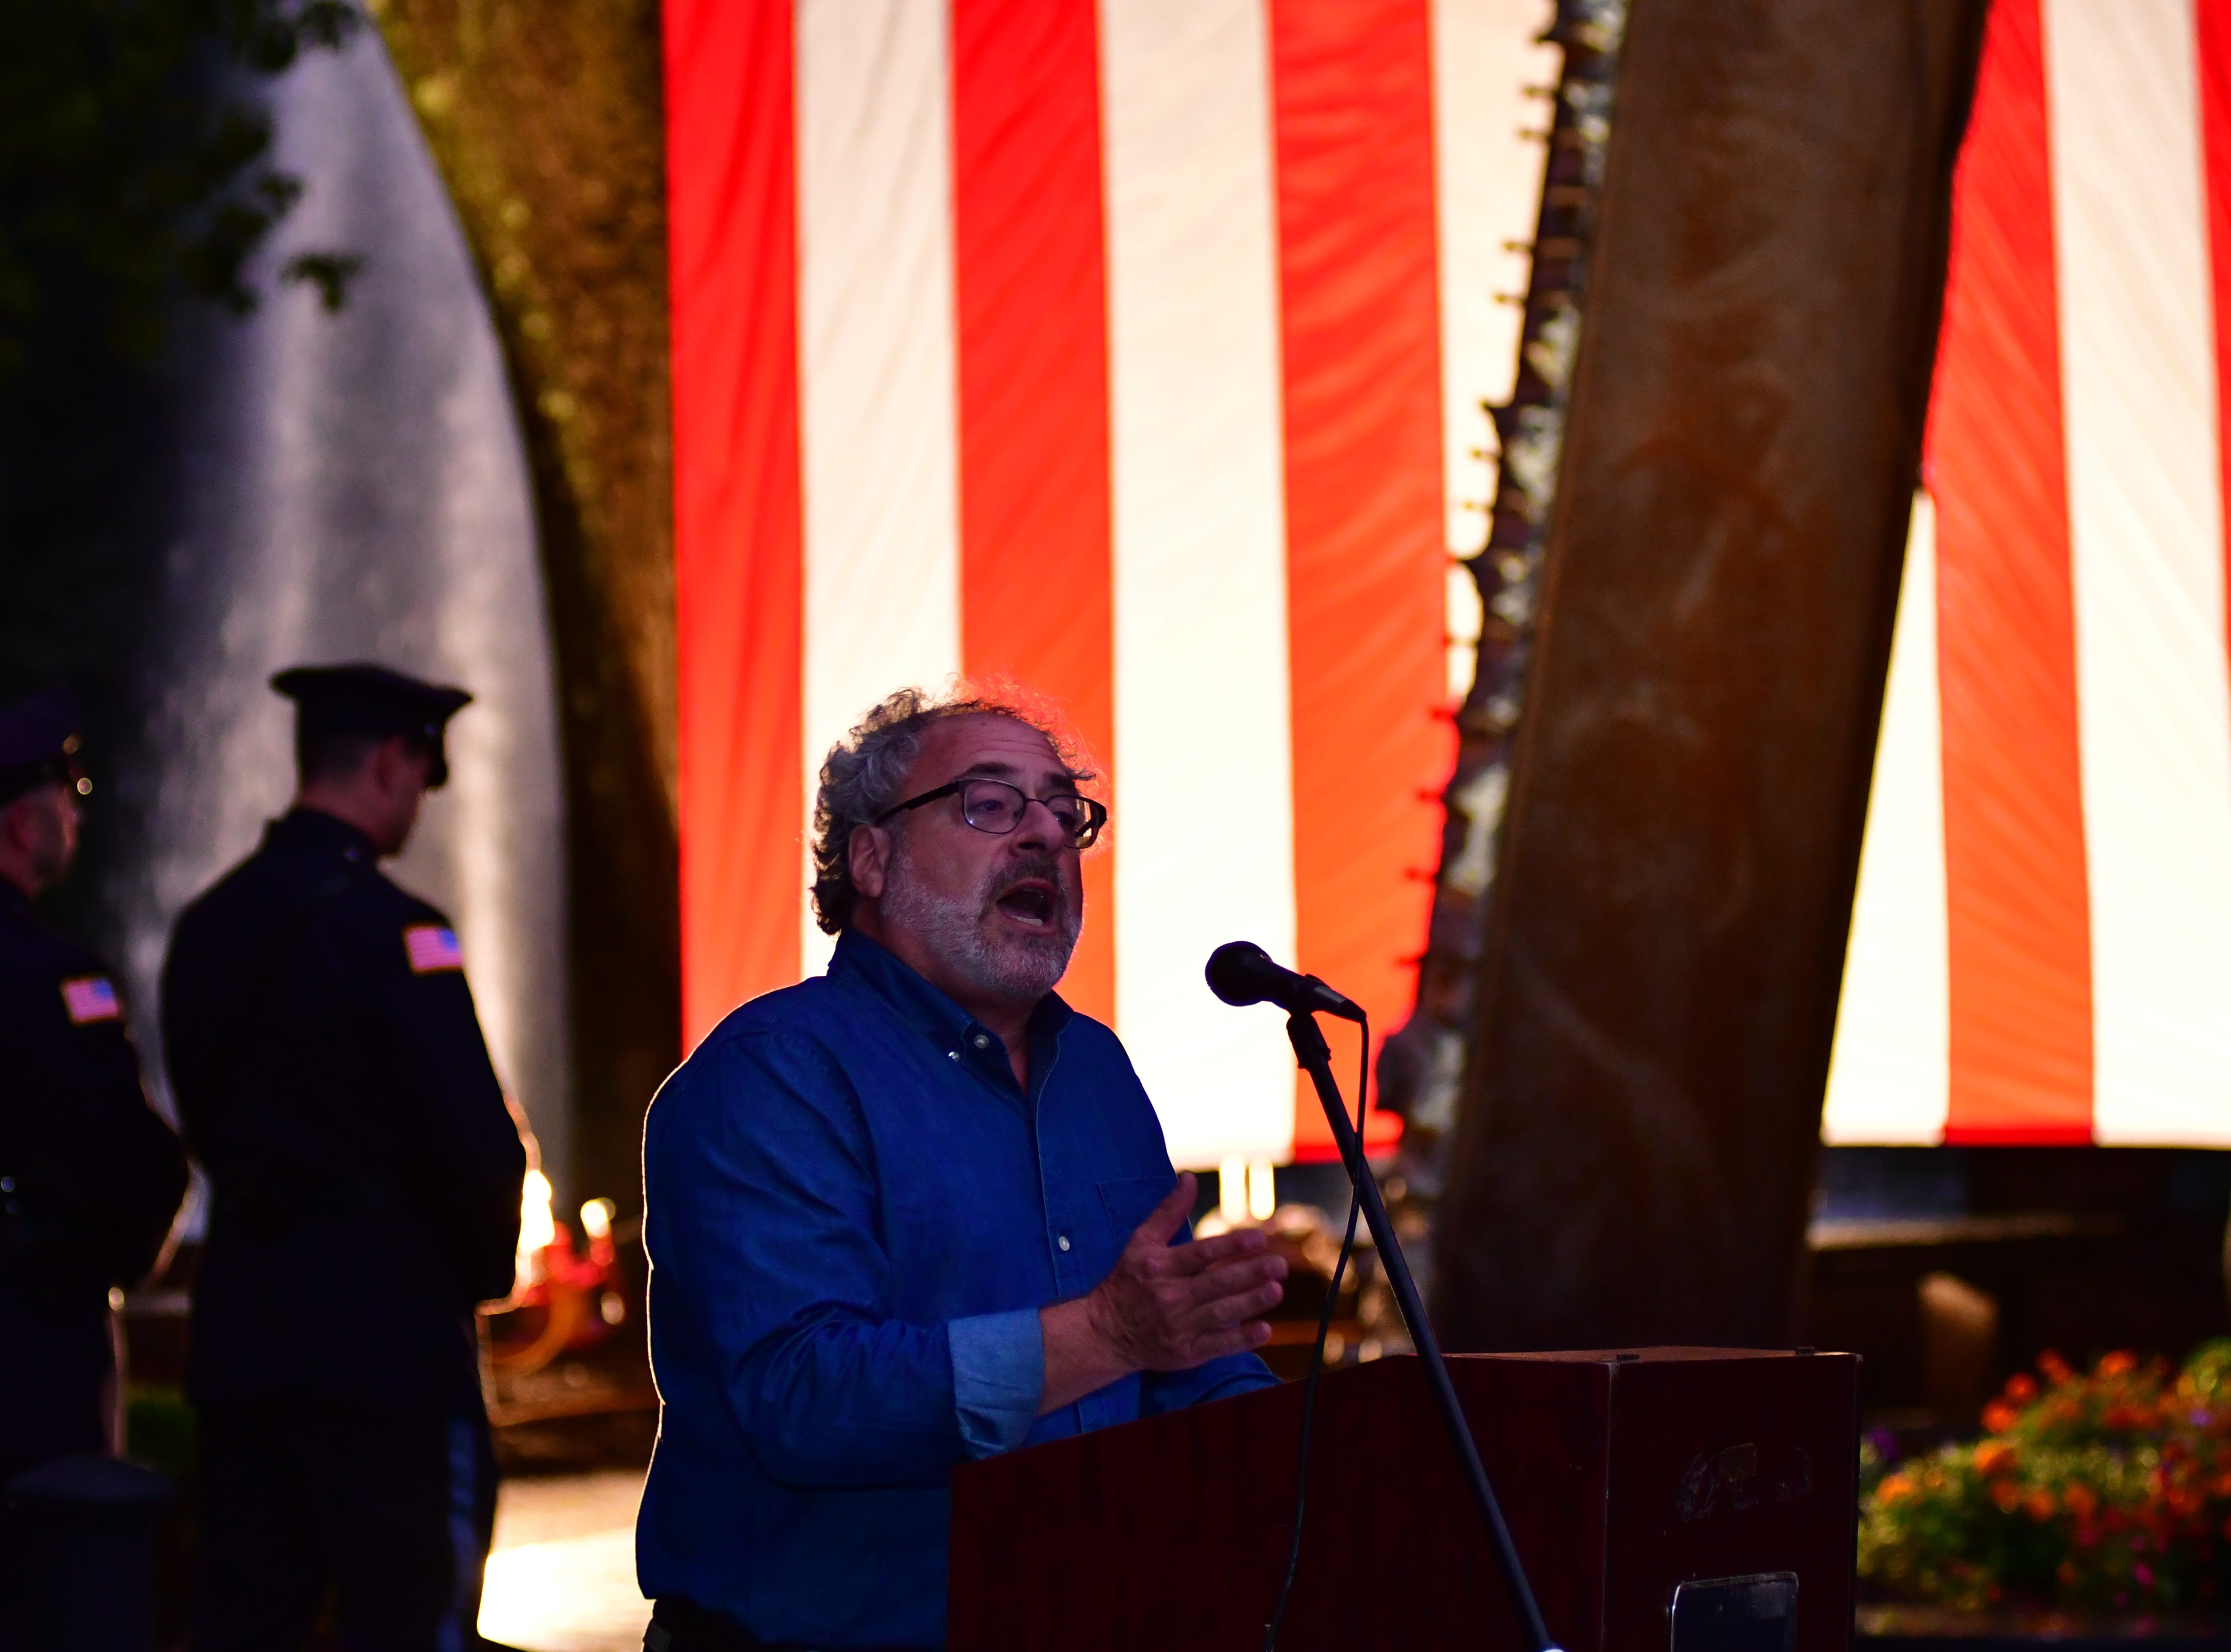 David Handschuh, speaks about his experience as a photographer covering the World Trade Center terrorist attack in New York in 2001. After taking photos that were published in the newspapers David sustained injuries (broken legs) and had to be rescued.  Event was at the Crestwood Lake Memorial in Allendale on Tuesday September 11, 2018.